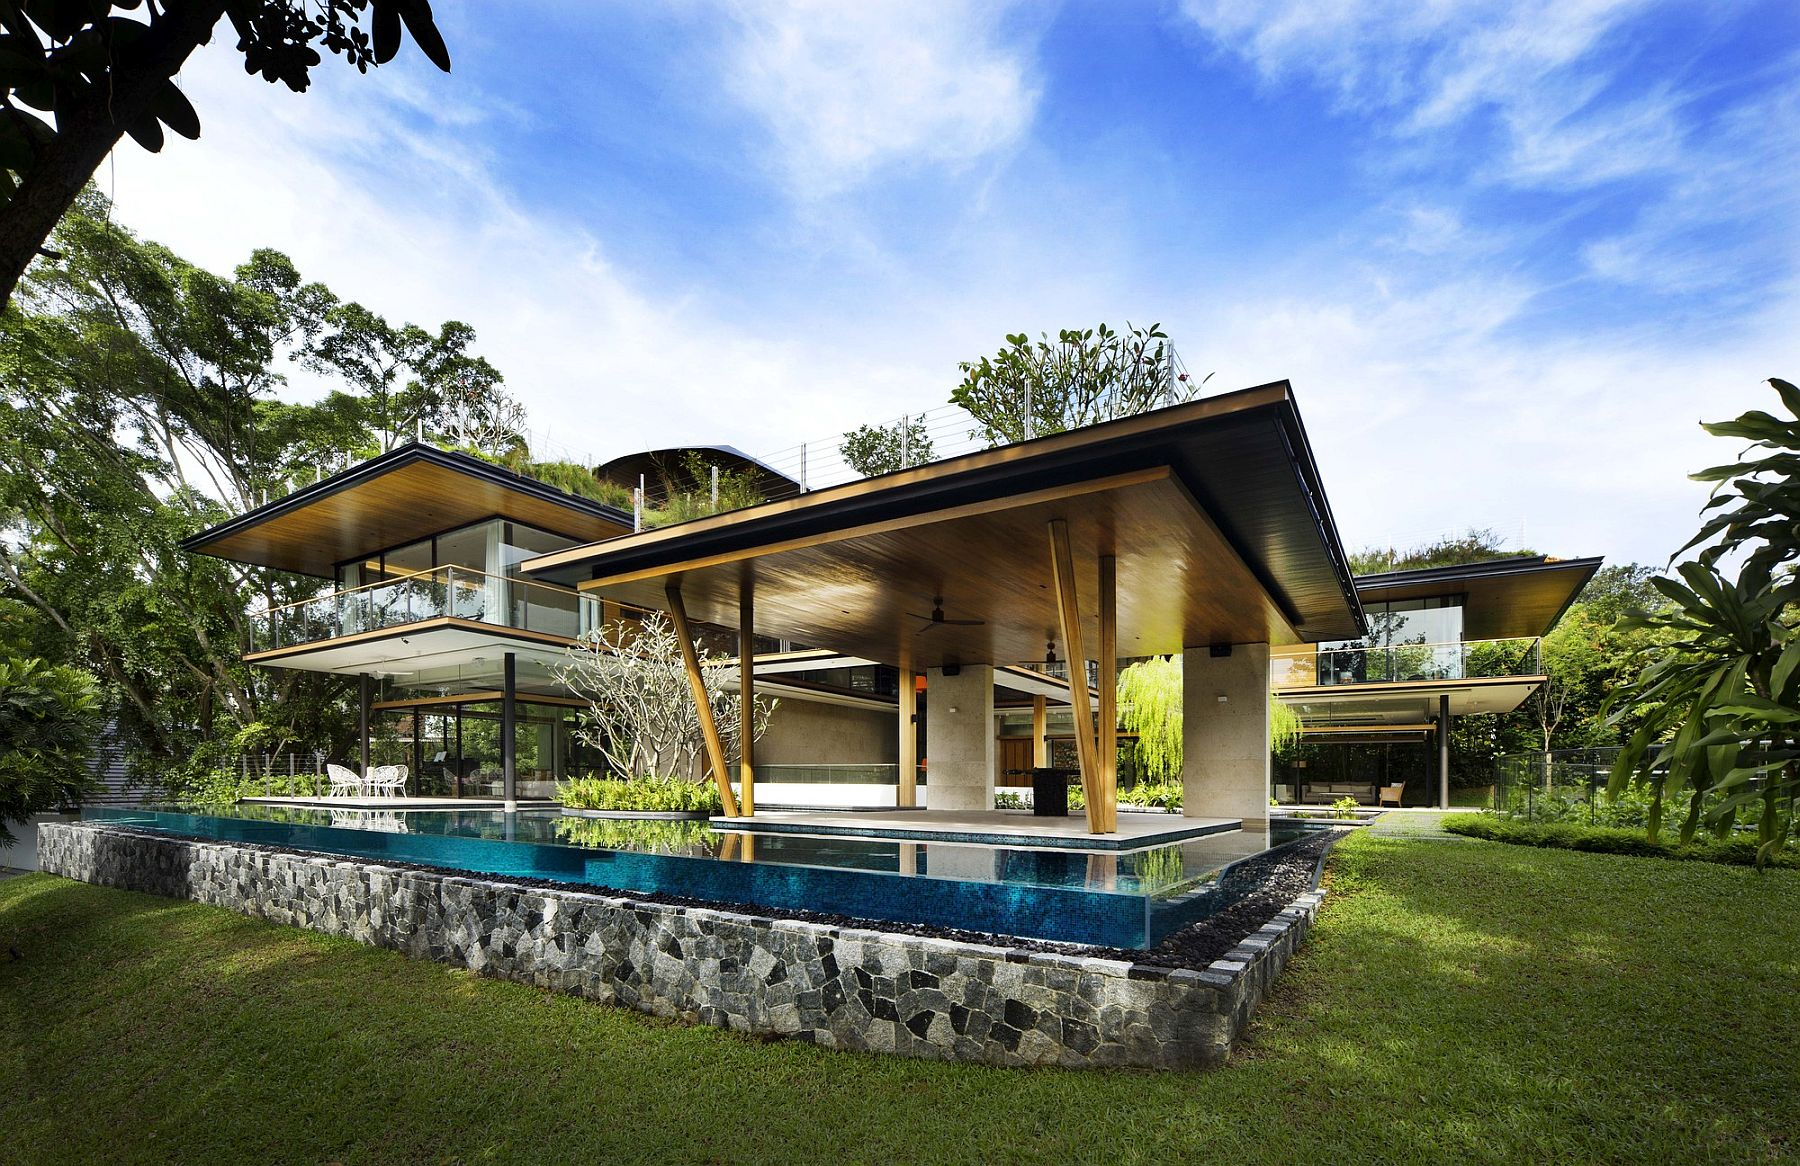 Stunning contemporary house with plenty of greenery and a natural pond and pool